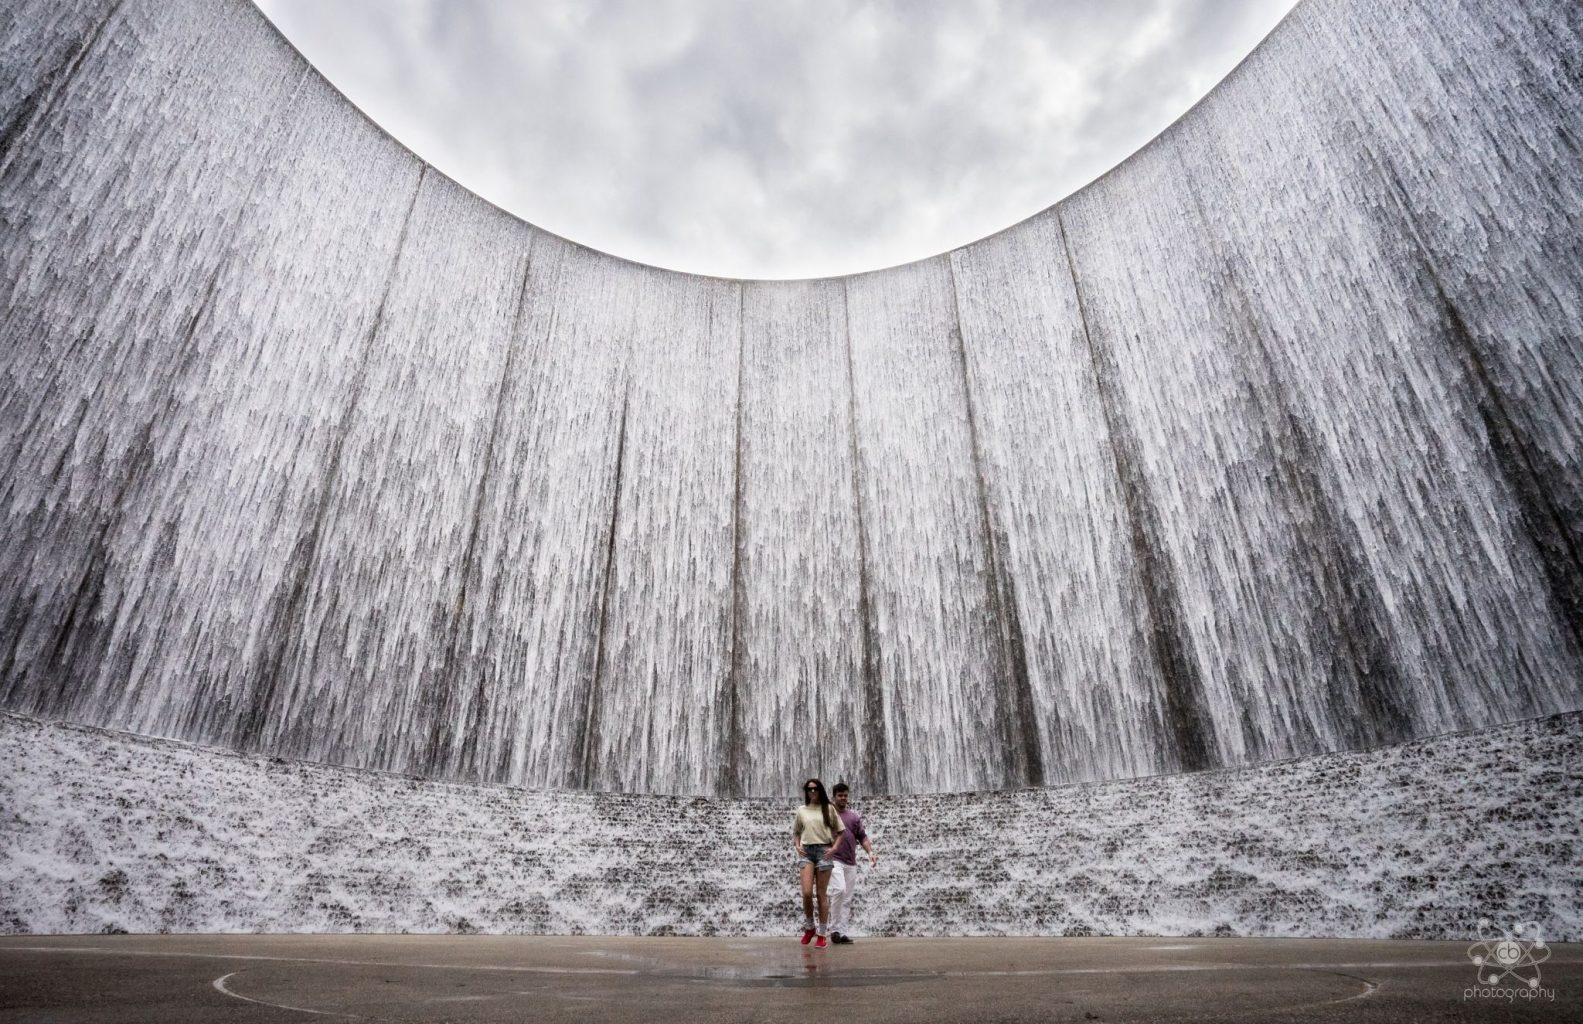 The Water Wall Park